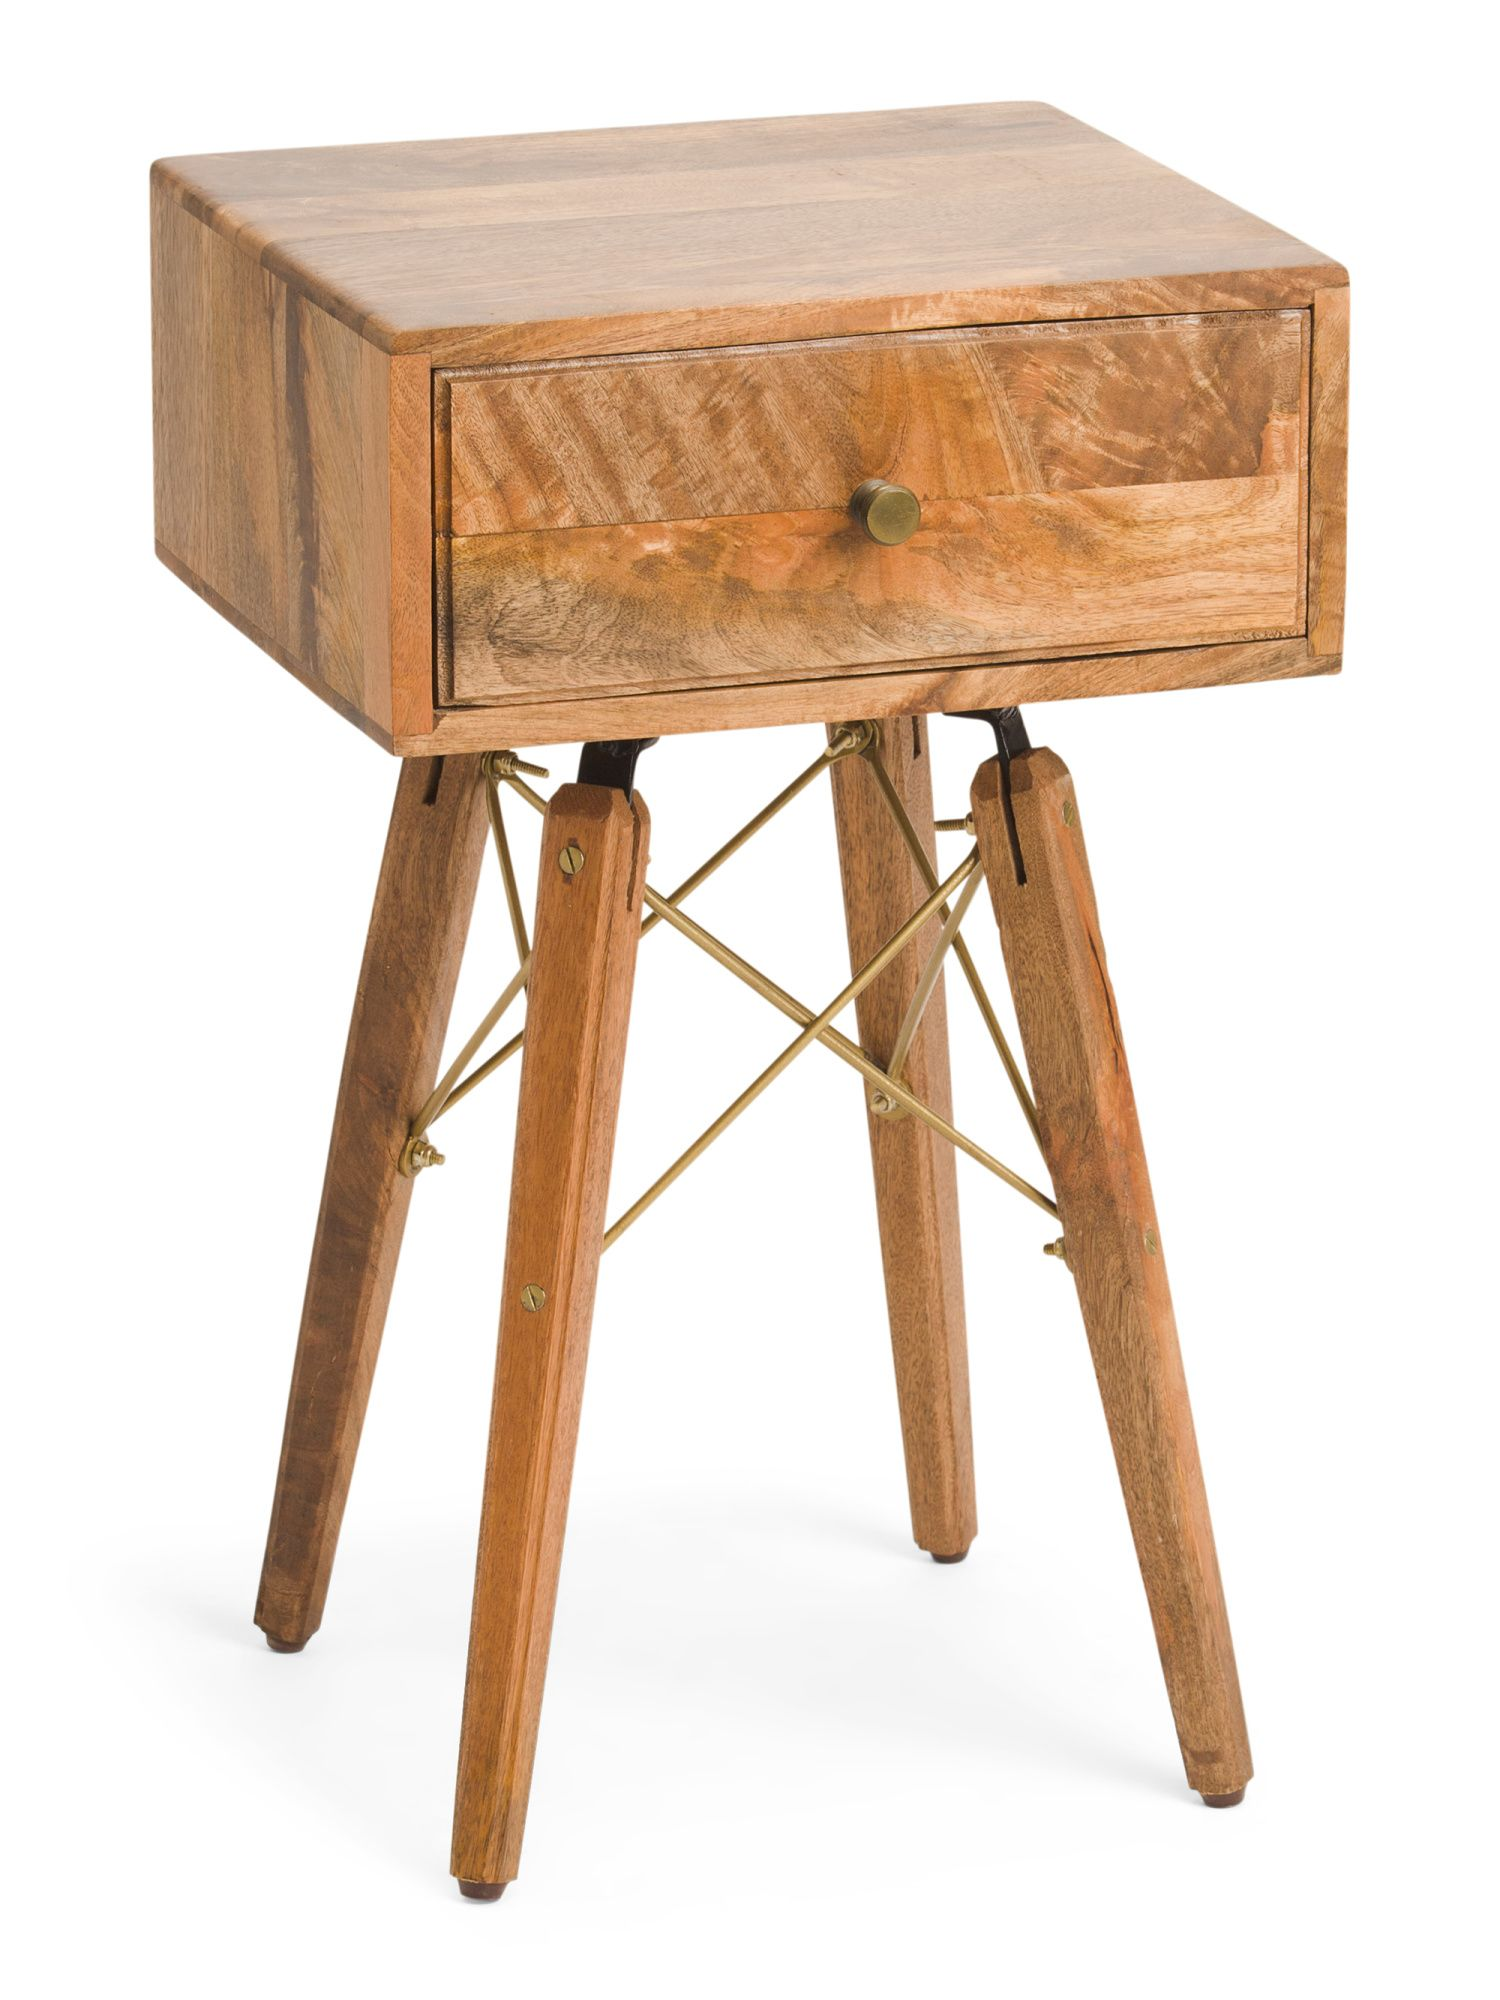 Bedside Tables For 2 Mango Wood Bedside Table Accent Furniture T J Maxx In 2021 Mango Wood Bedside Tables Wood Bedside Table Wood Accent Table